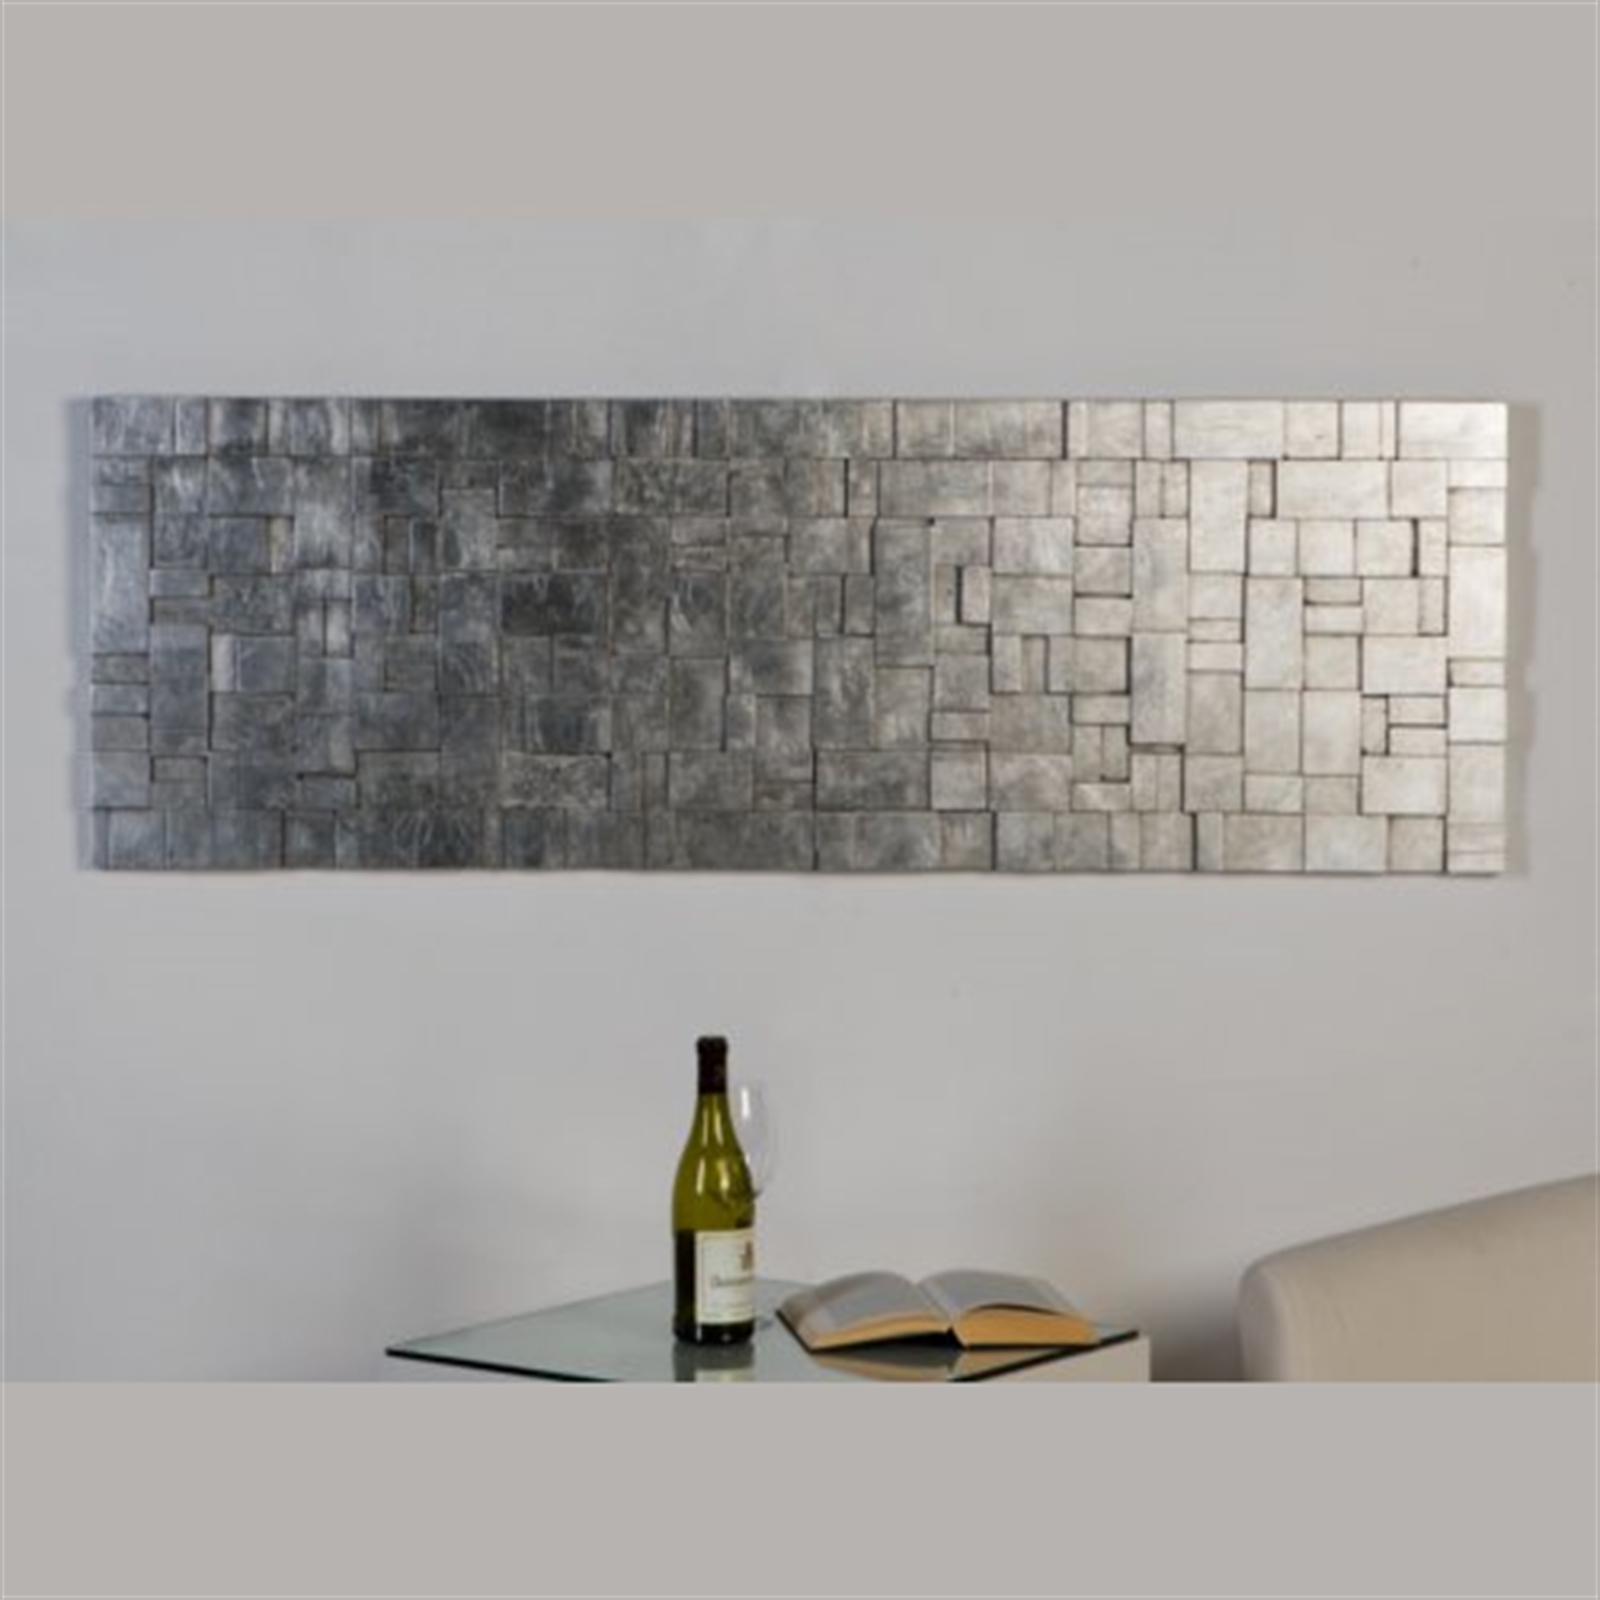 Edles design wandbild 50x150cm silber wand dekoration for Designer dekoration